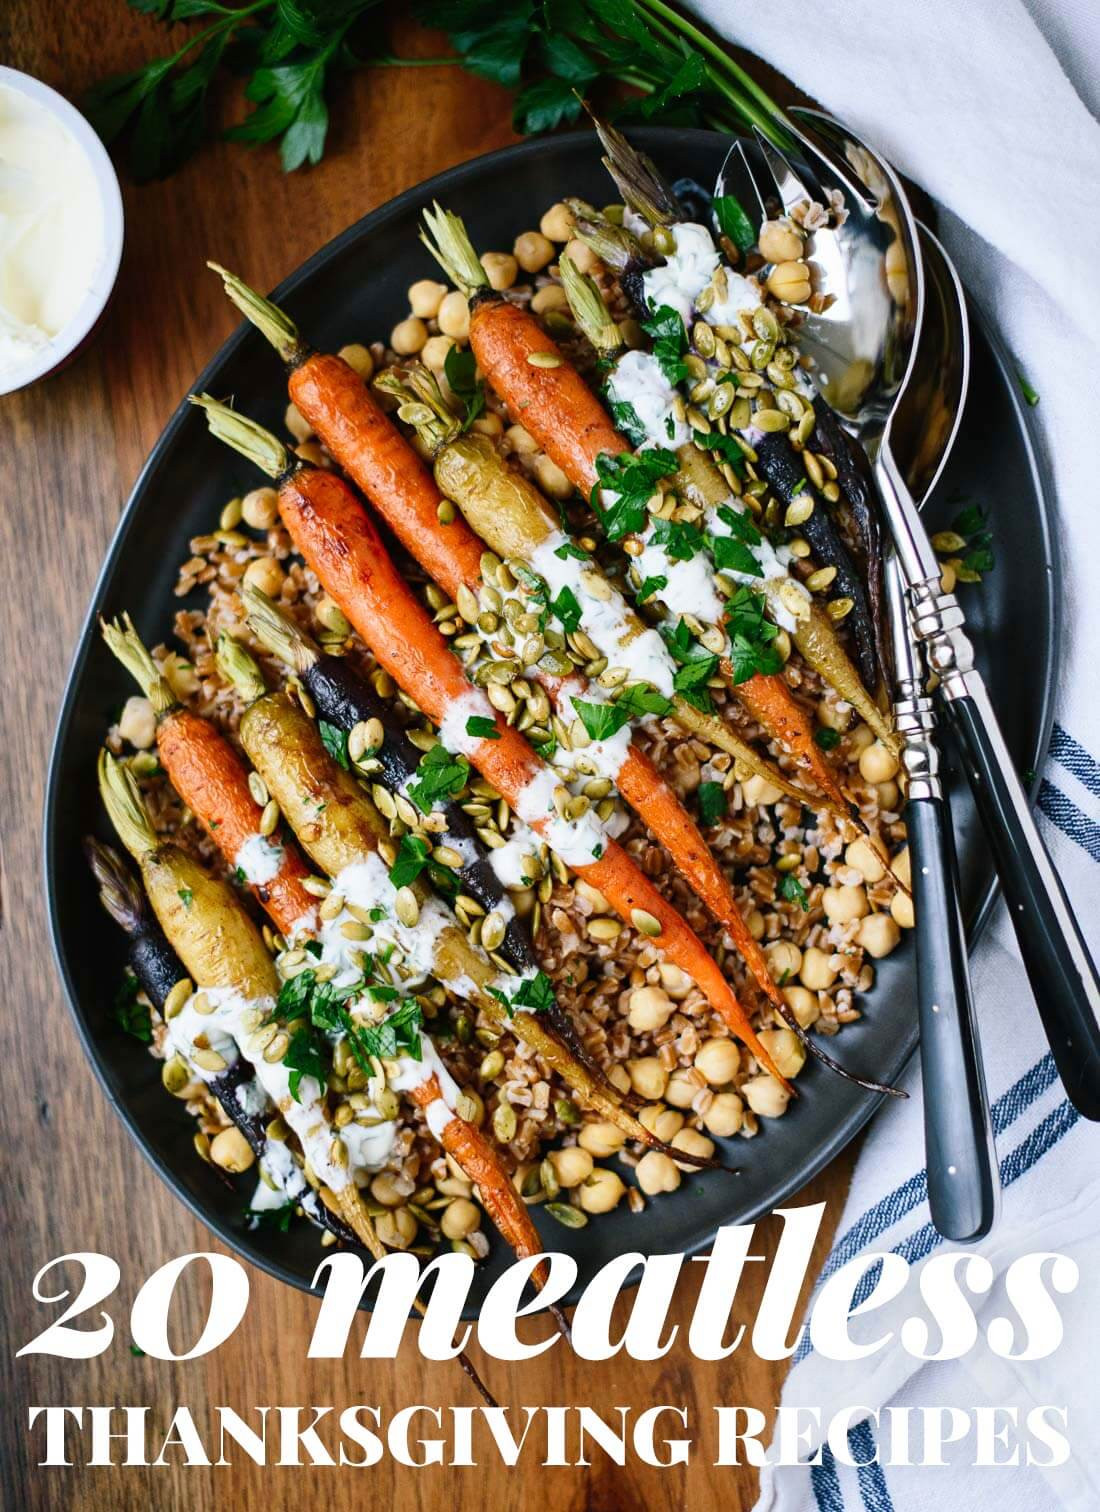 Vegetarian Side Dishes For Thanksgiving  20 Ve arian Thanksgiving Recipes Cookie and Kate